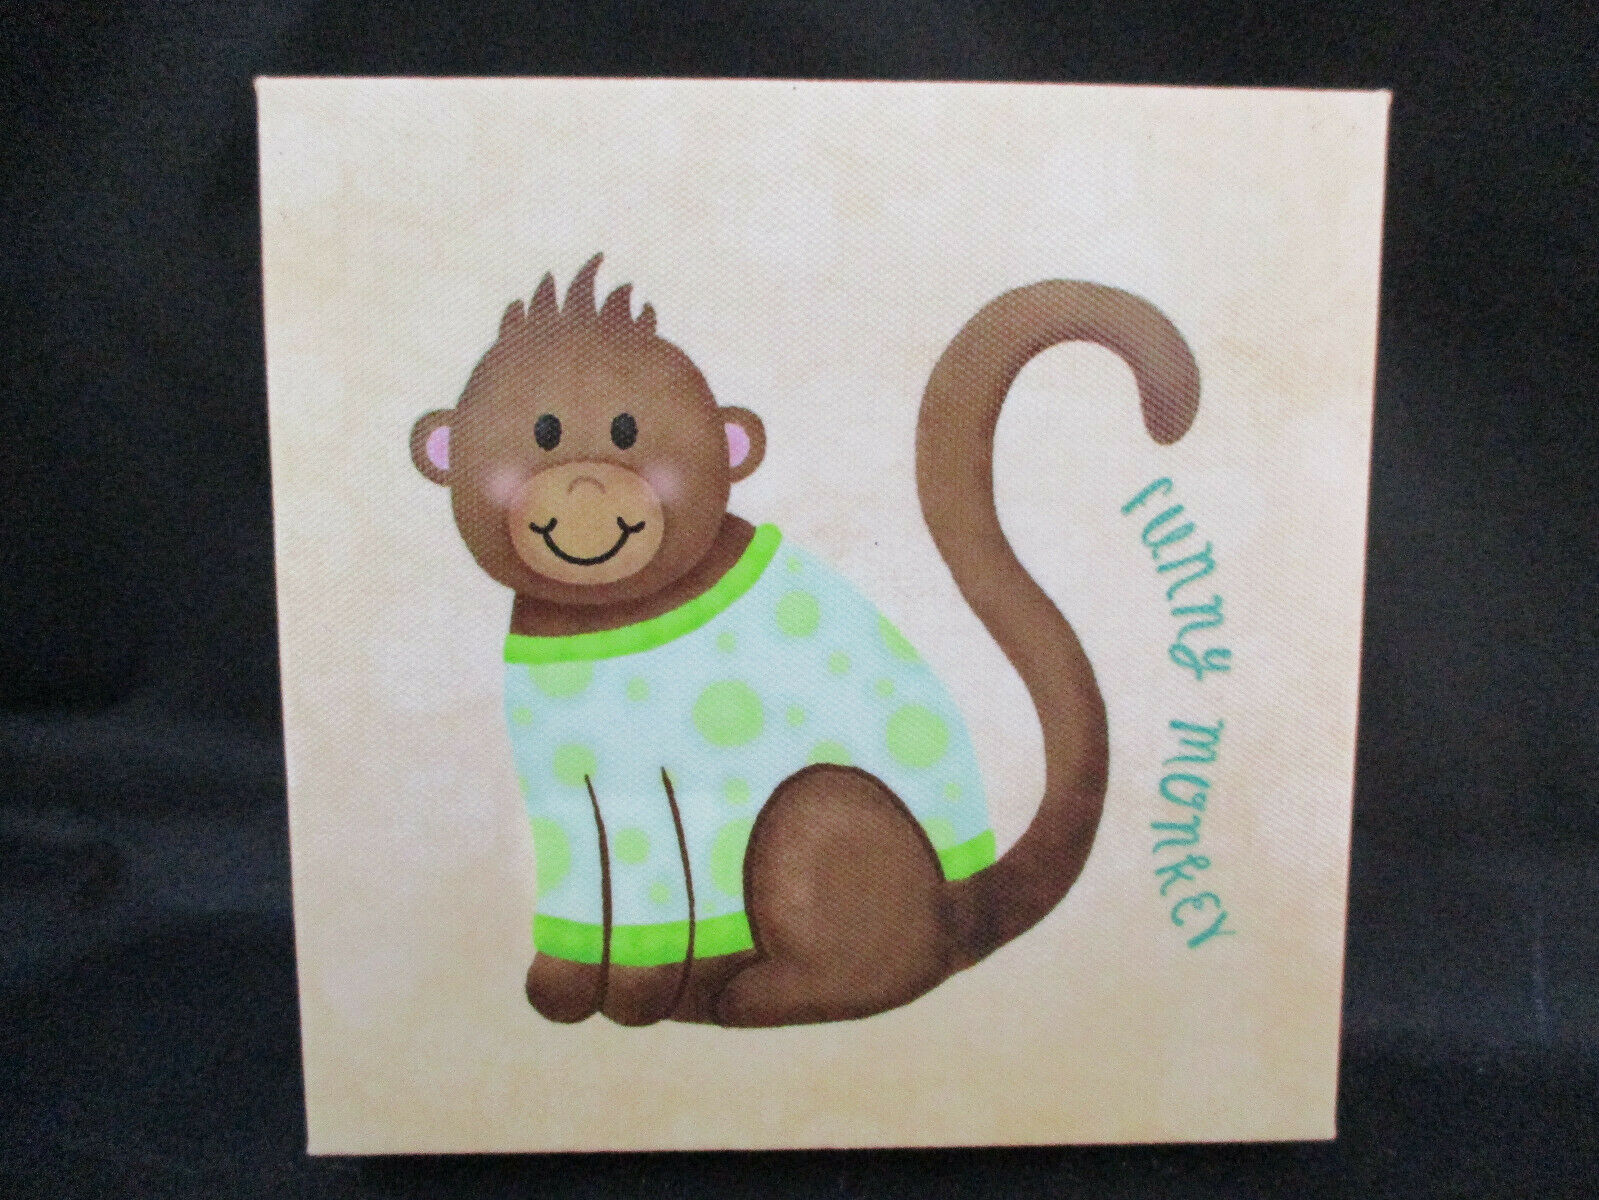 Set 4 Nursery Wall Vinyl Pictures BABY SAFARI III Roaring Brook Art Co 6 CUTE - $14.99